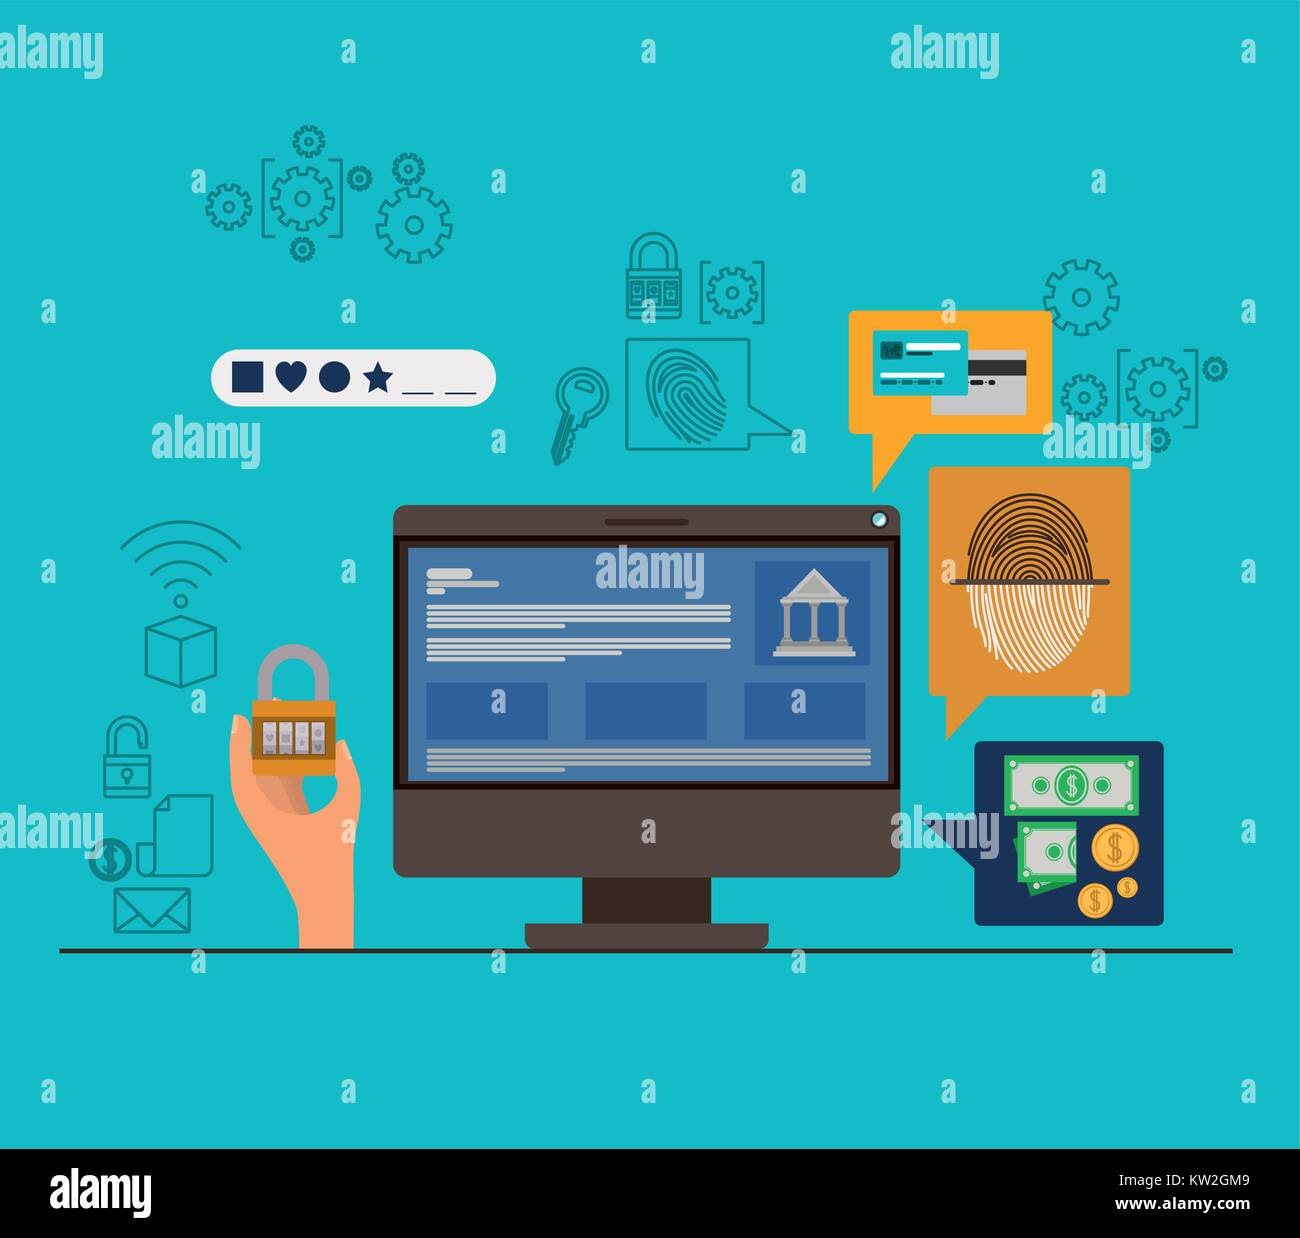 mobile security with desktop computer and secure apps in aquamarine color background - Stock Image